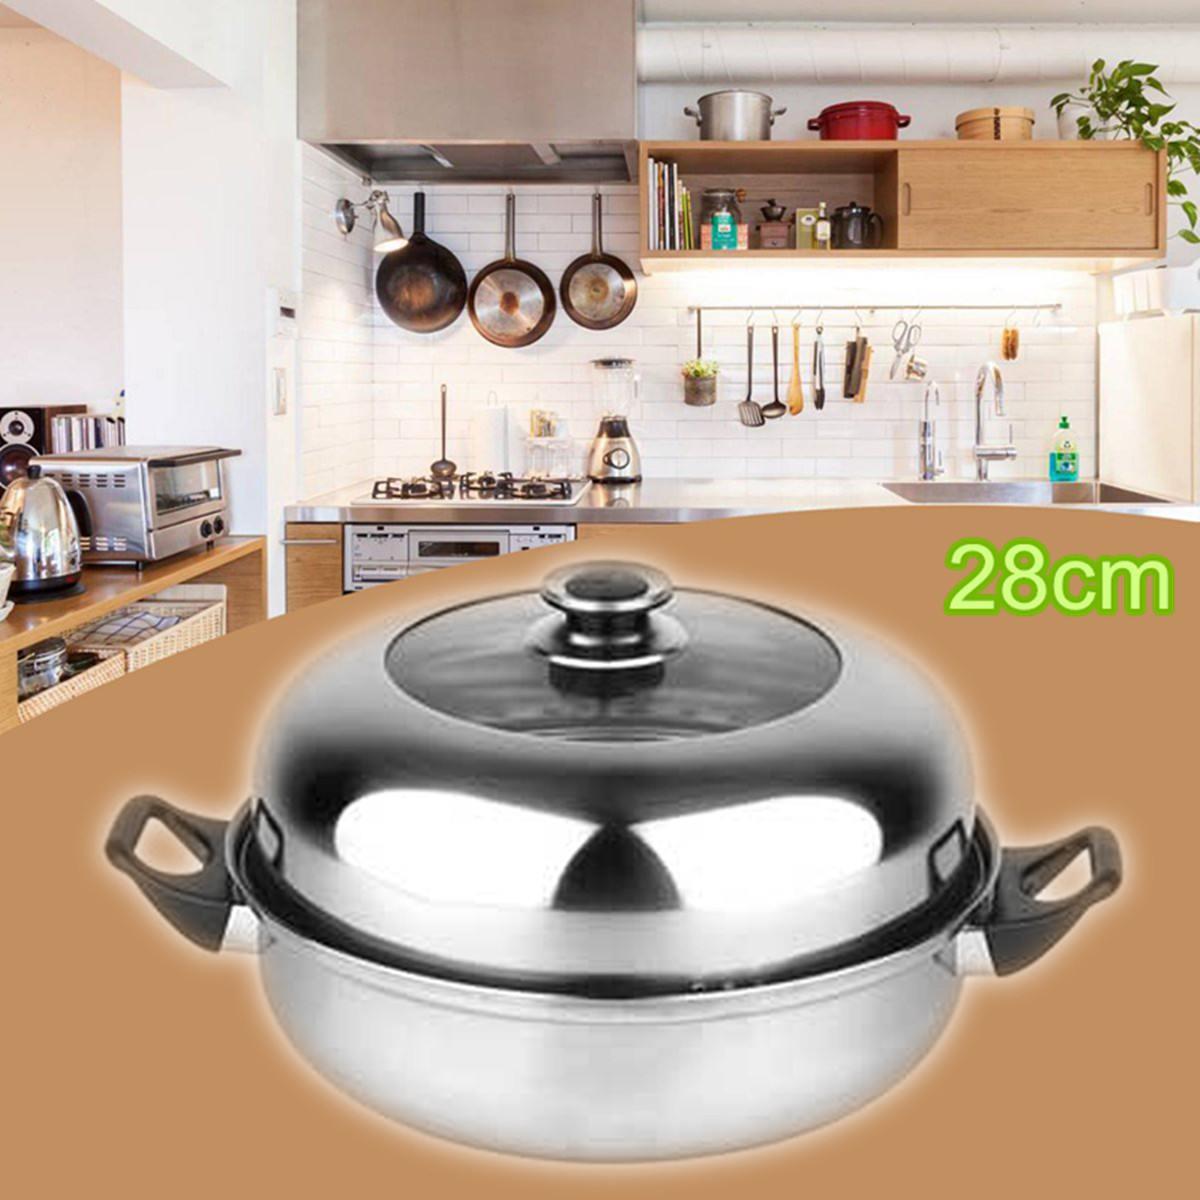 2 Tier Stainless Steel Steamer Gas Stove Induction Compatible Home Kitchen Cooking Cookware Double Boilers 28cm Steam Pot Cooker